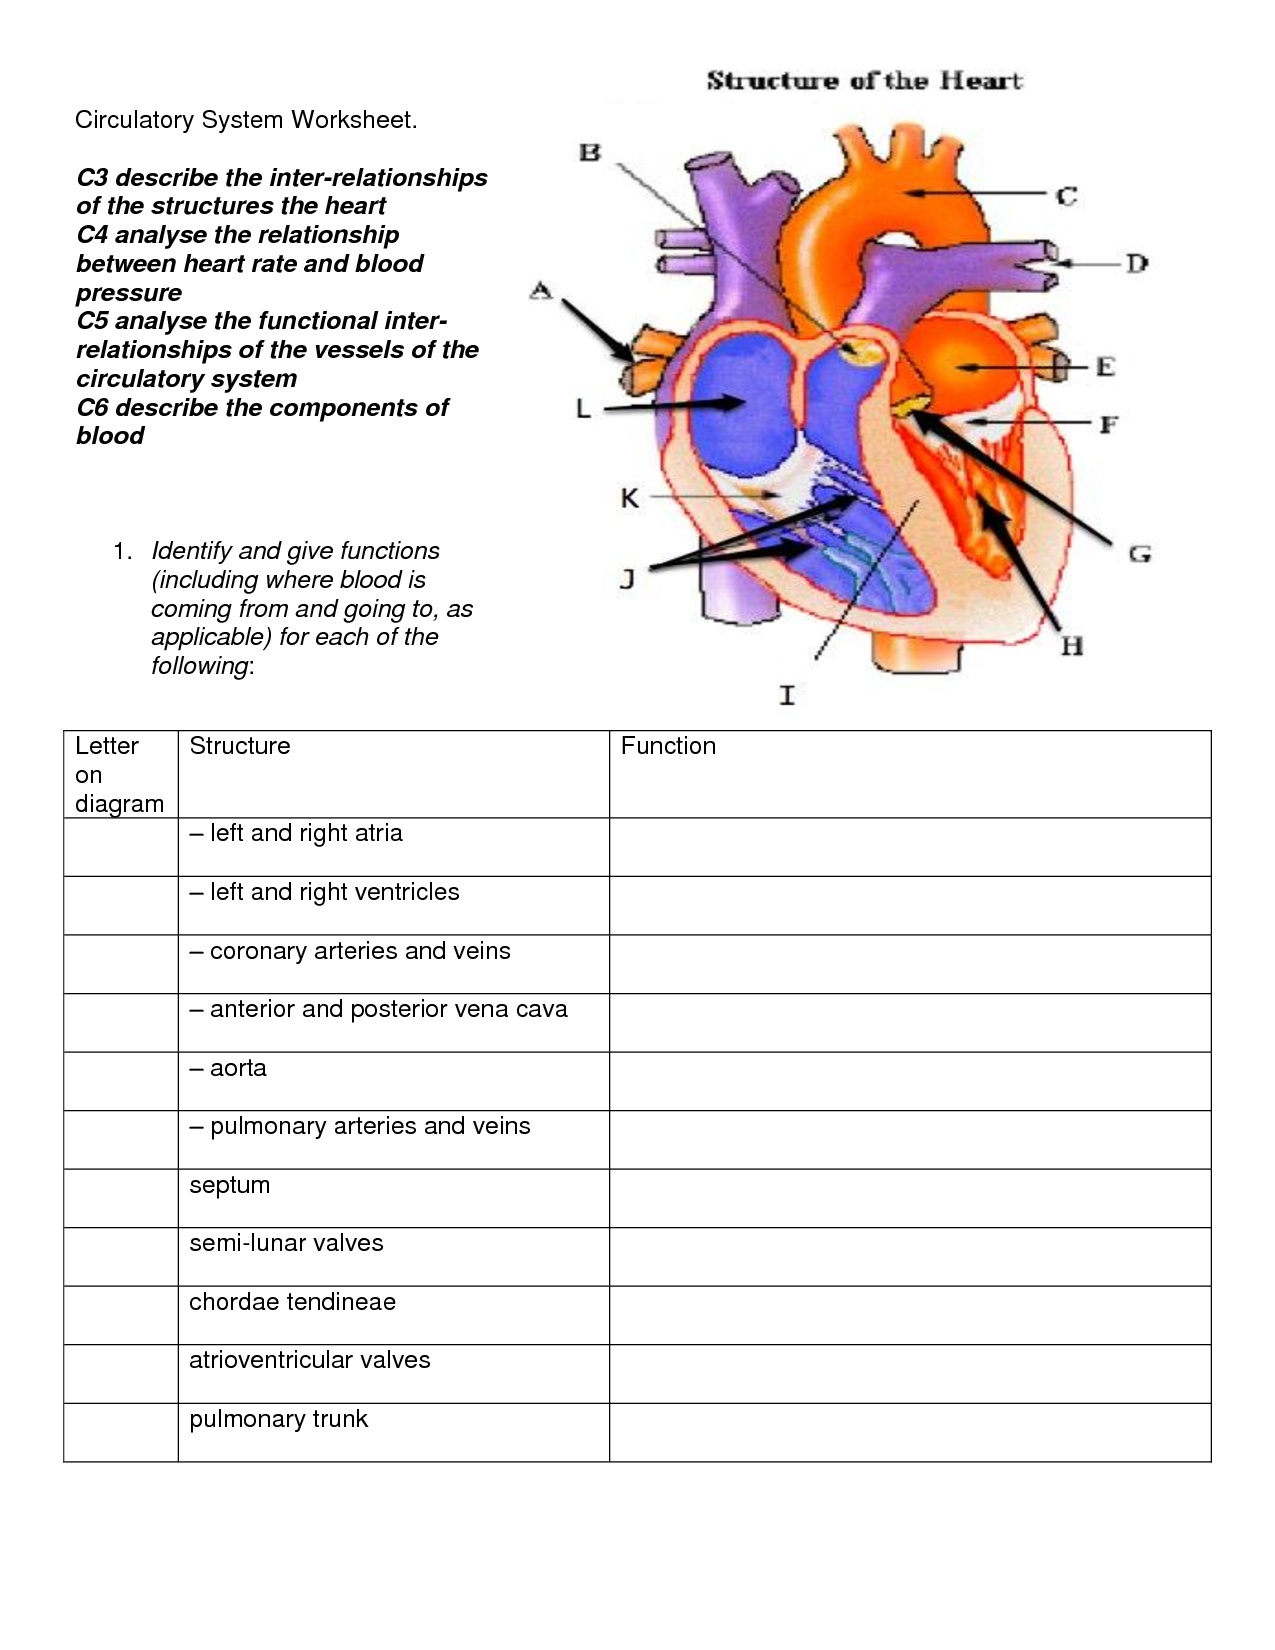 Worksheets Heart Diagram Worksheet circulatory system diagram worksheet doc